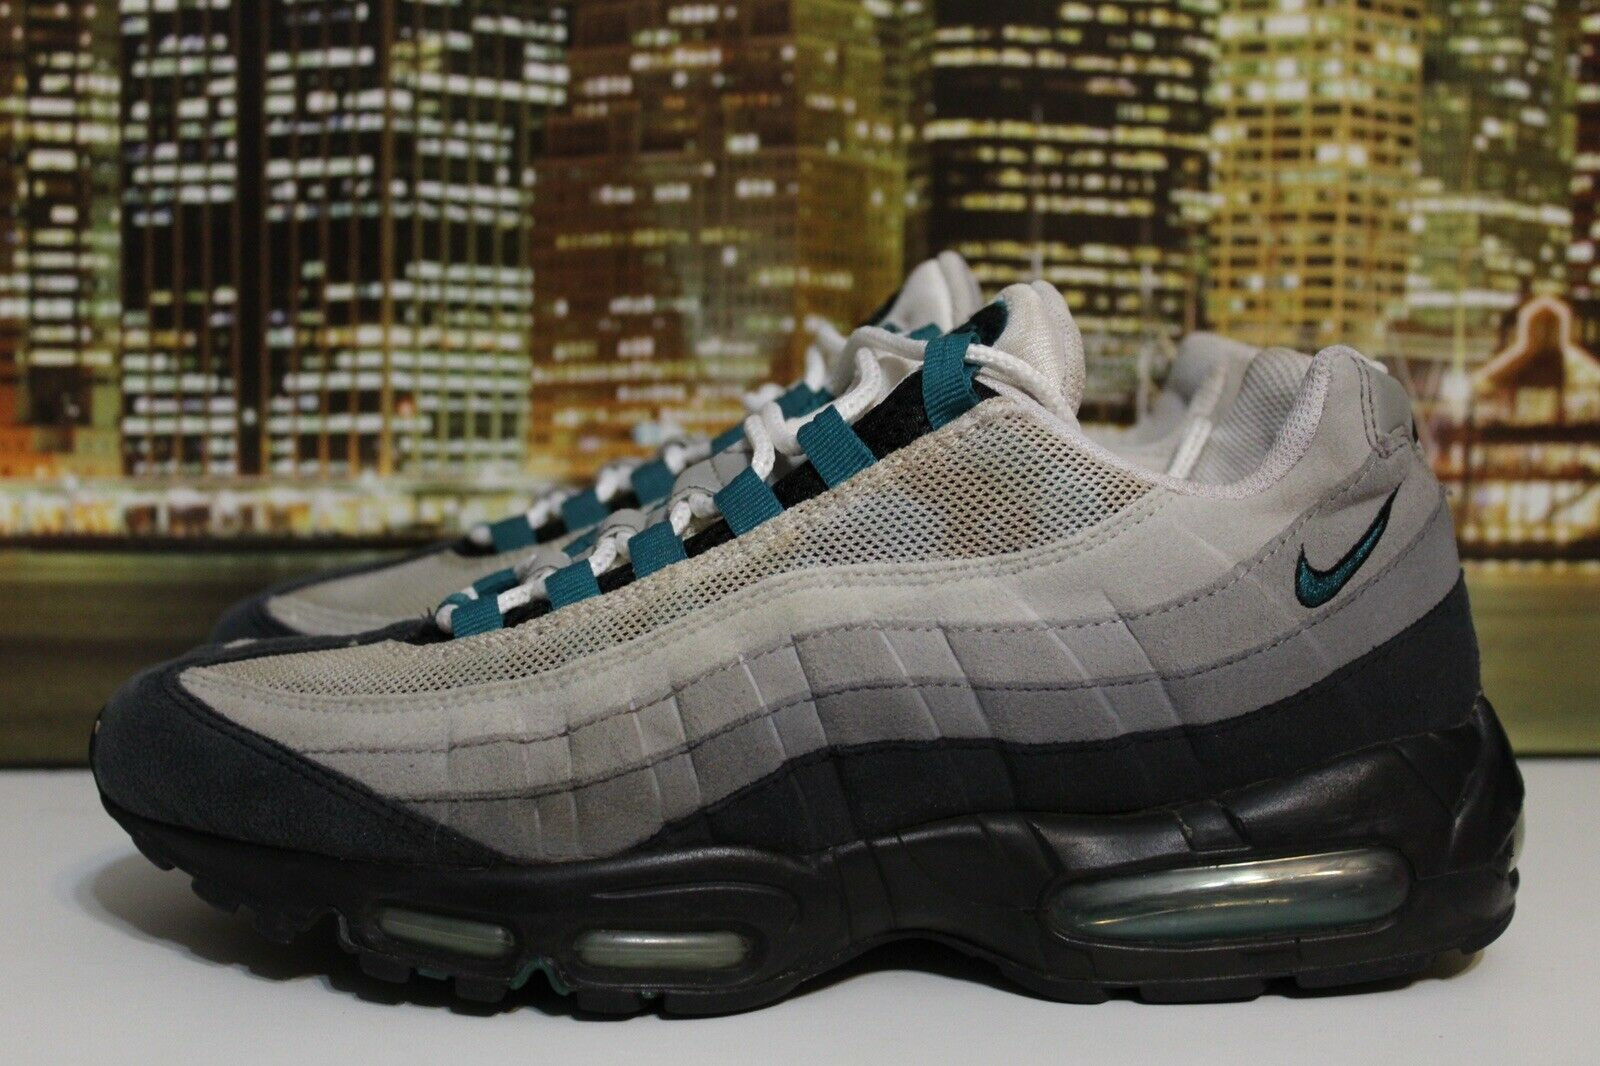 Nike Air Max 95 Fresh Water Cool Grey Black 2009 Running Sneakers Size 9